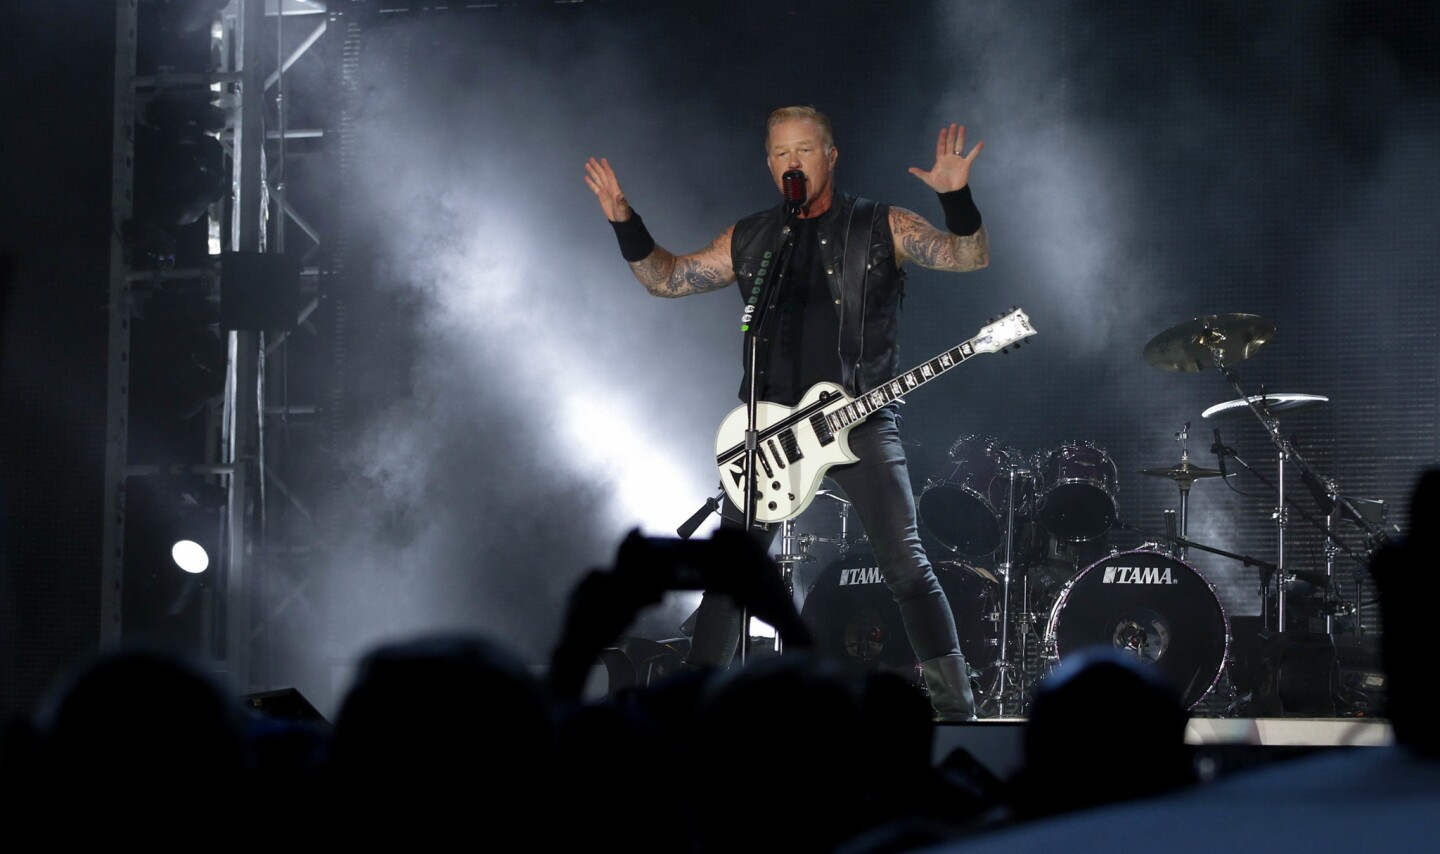 Lead singer/guitarist, James Hetfield from Metallica played at Petco Park Sunday night in San Diego.